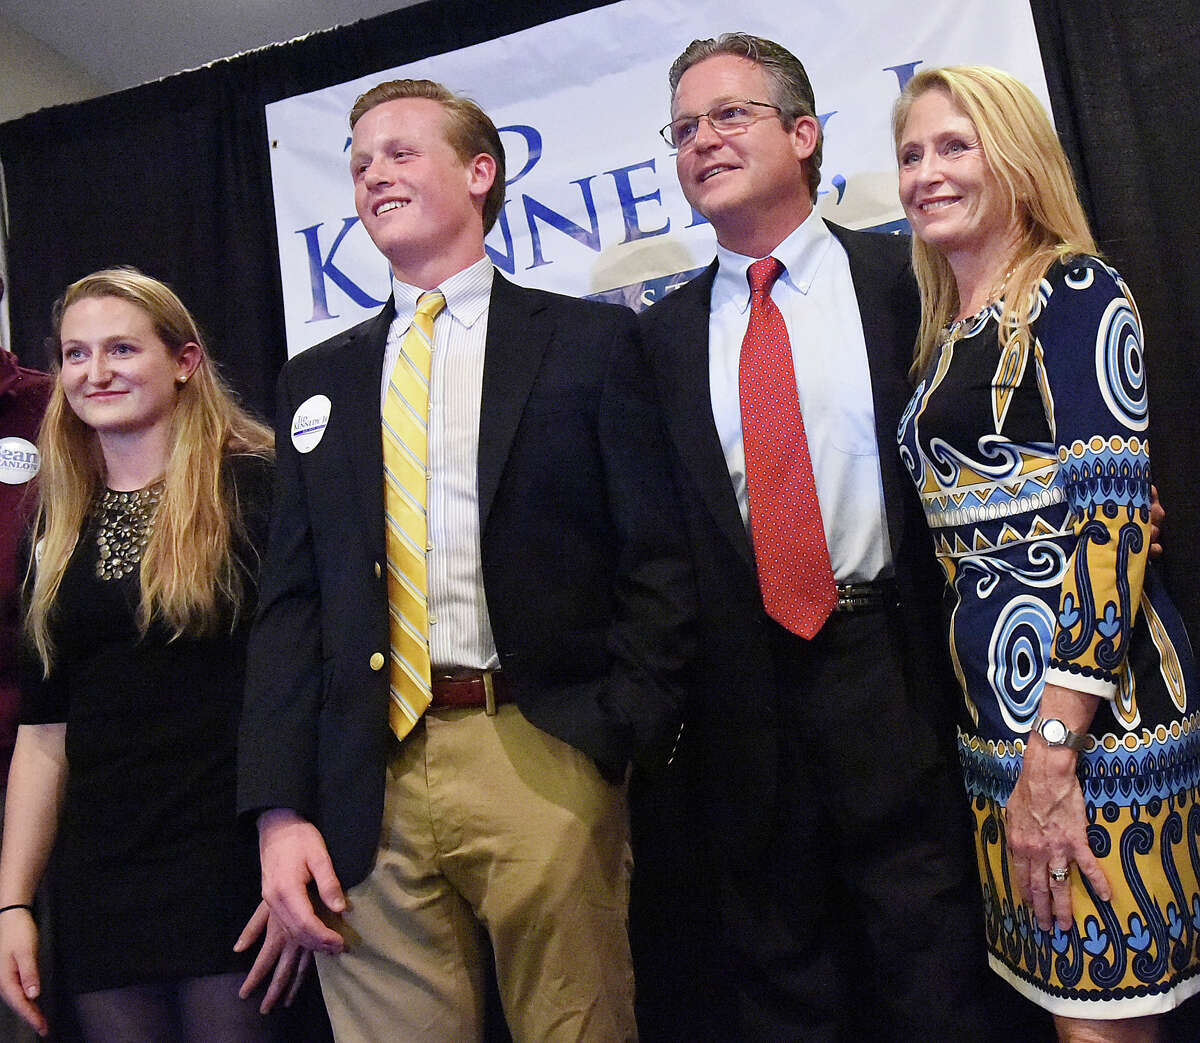 """(Catherine Avalone - New Haven Register) Democrat Ted Kennedy, Jr. and his wife, Dr. Katherine """"Kiki"""" Kennedy and their children Kiley and Edward at the Italian American Club of Branford on Election Day, Tuesday, November 4, 2014."""